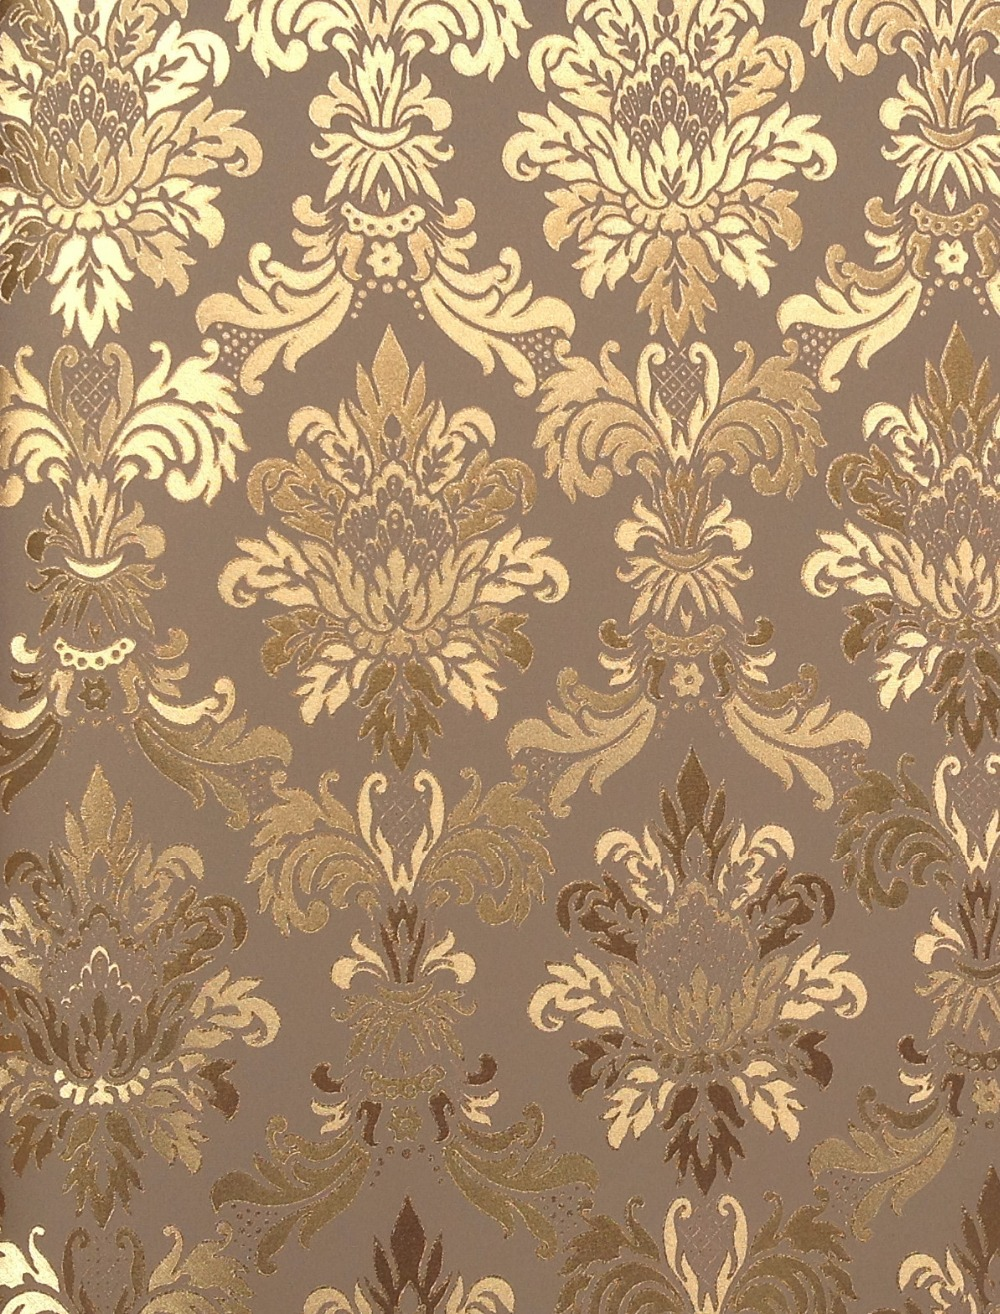 Cy222 gold foil wall paper chinese style vinyl wall paper for Gold wallpaper for walls